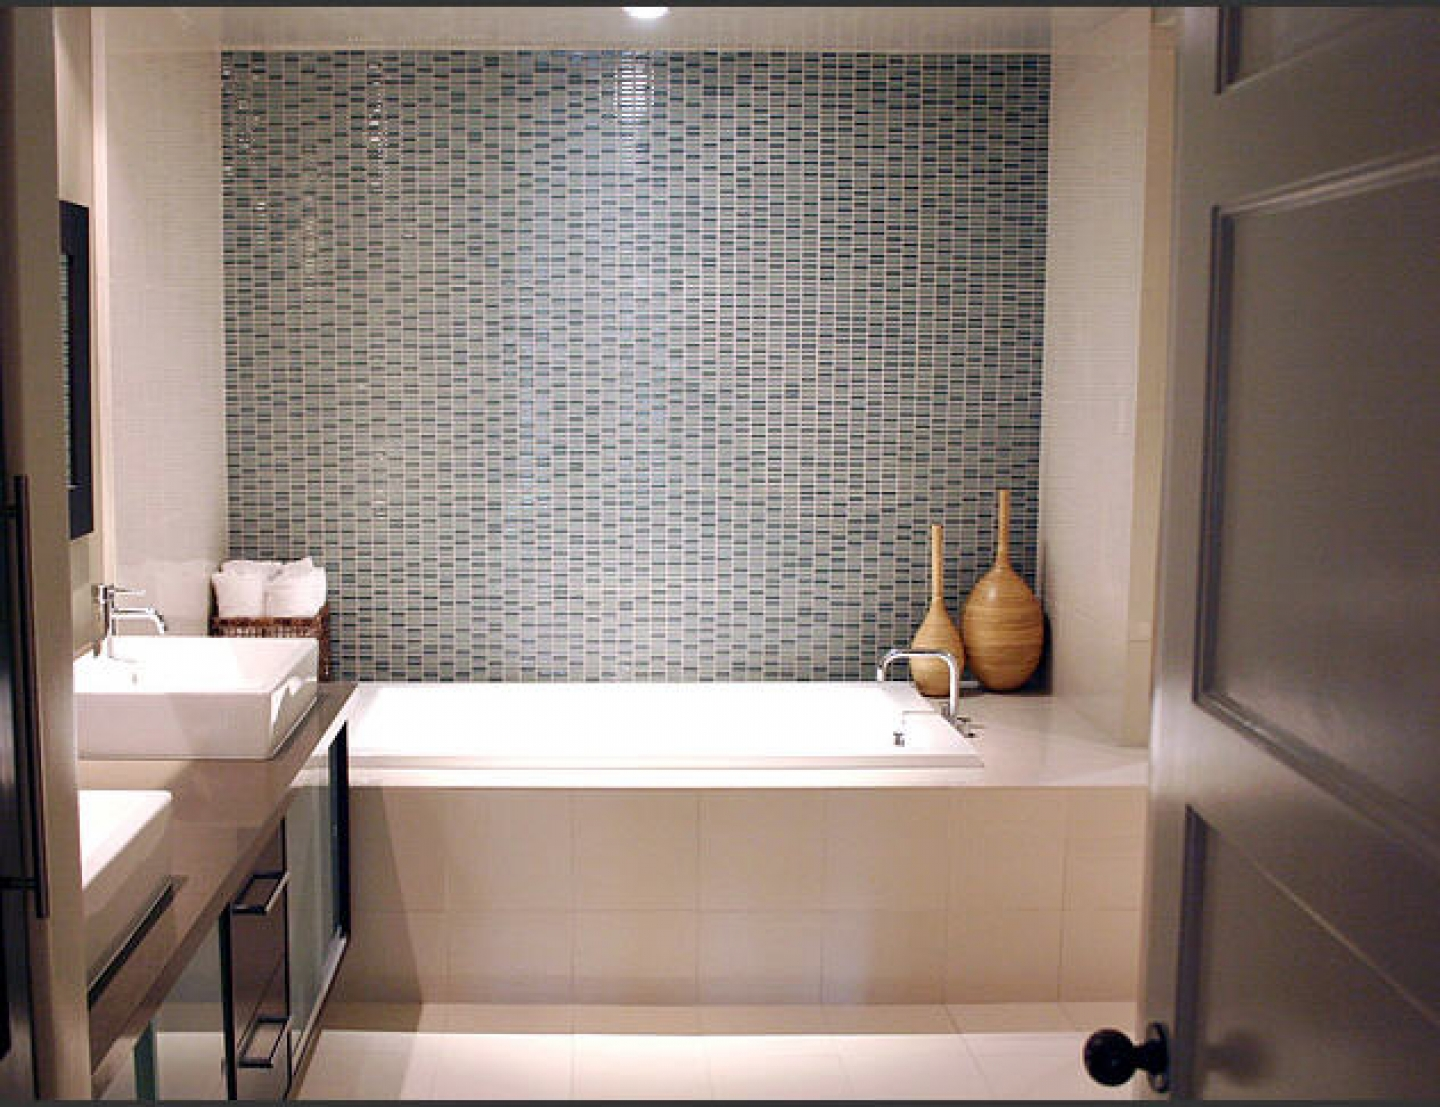 30 Cool Pictures And Ideas Of Easy Bathroom Wall Tile 2020